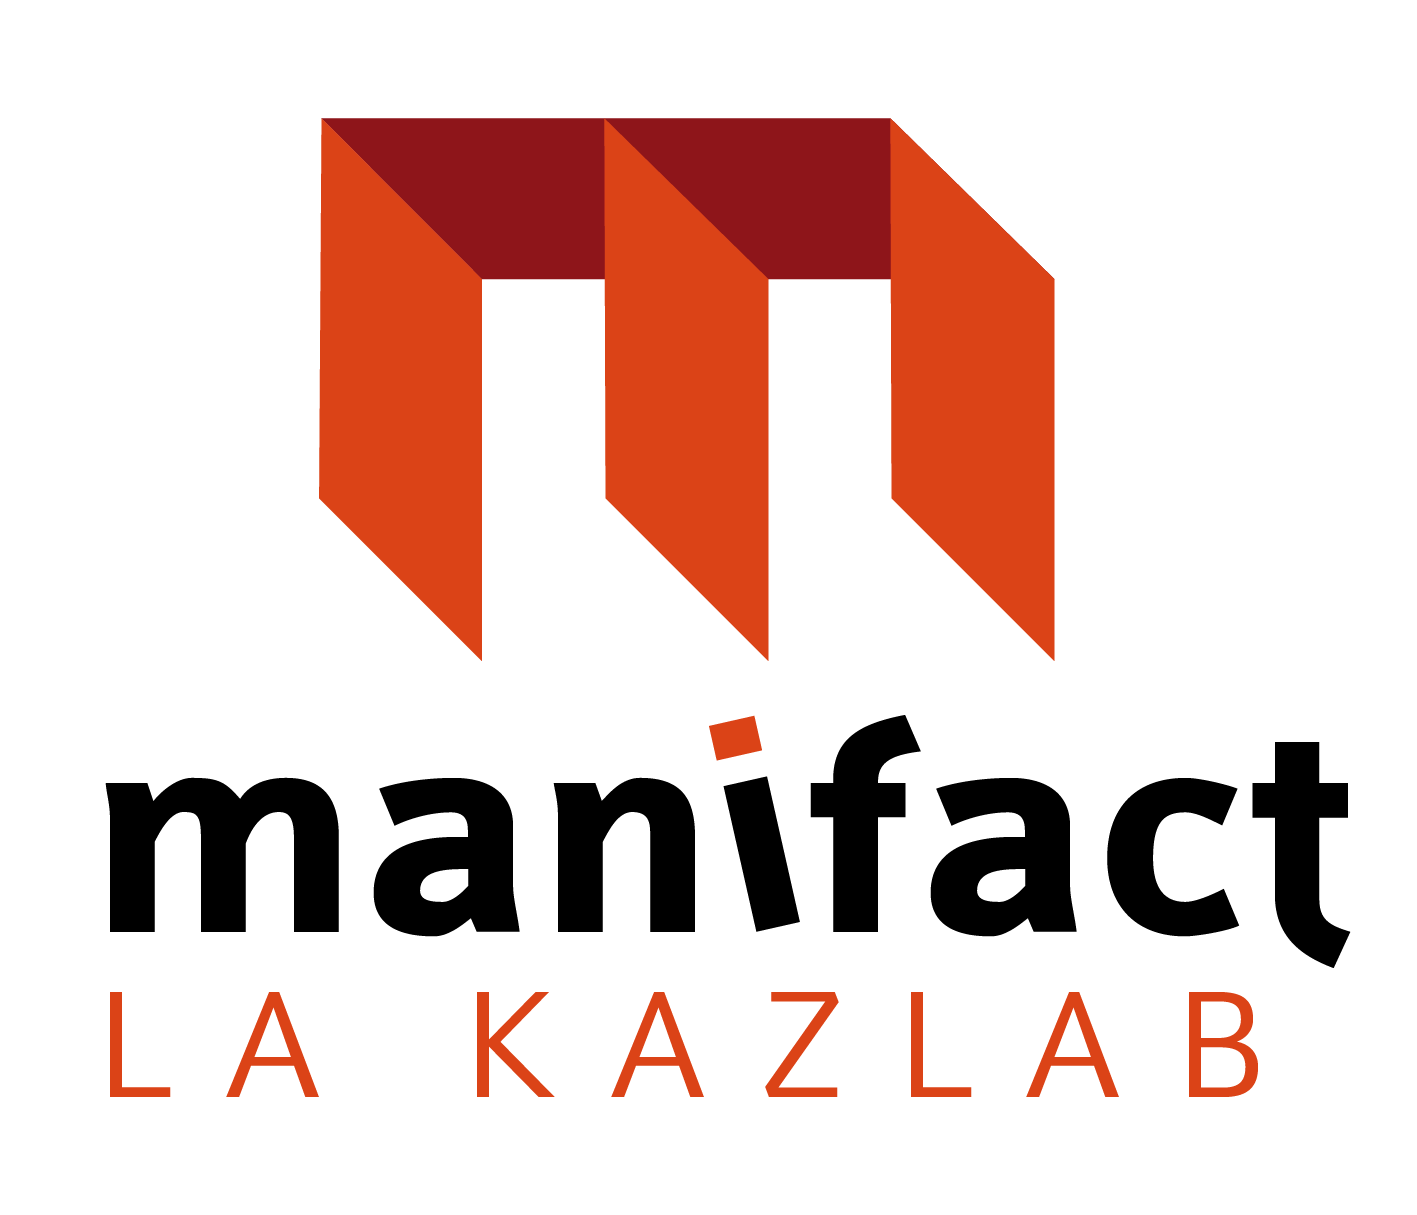 Group MANIFACT - La KazLab logo1-manifact-lakazlab widocreation-01.png